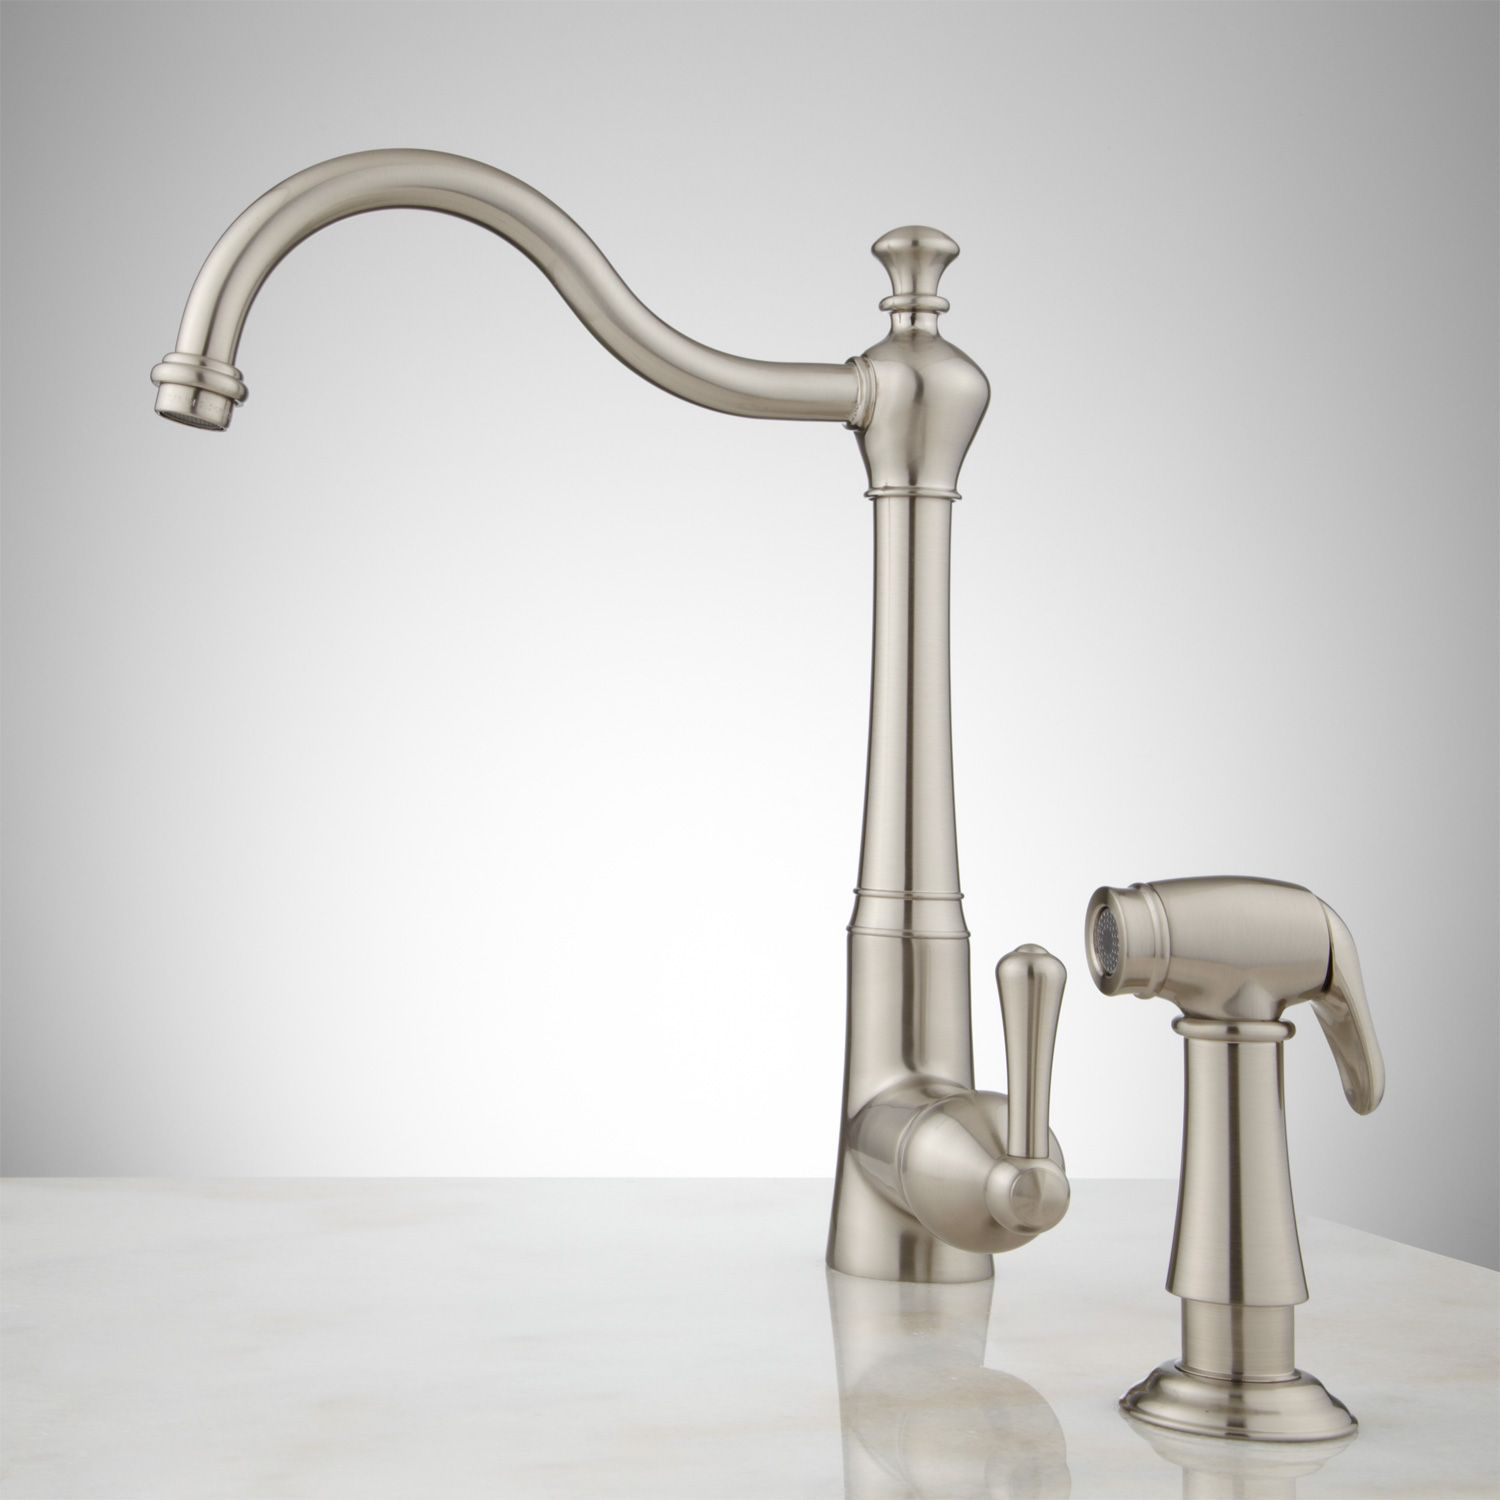 Sonoma Kitchen Faucet with Handspray   Signature Hardware